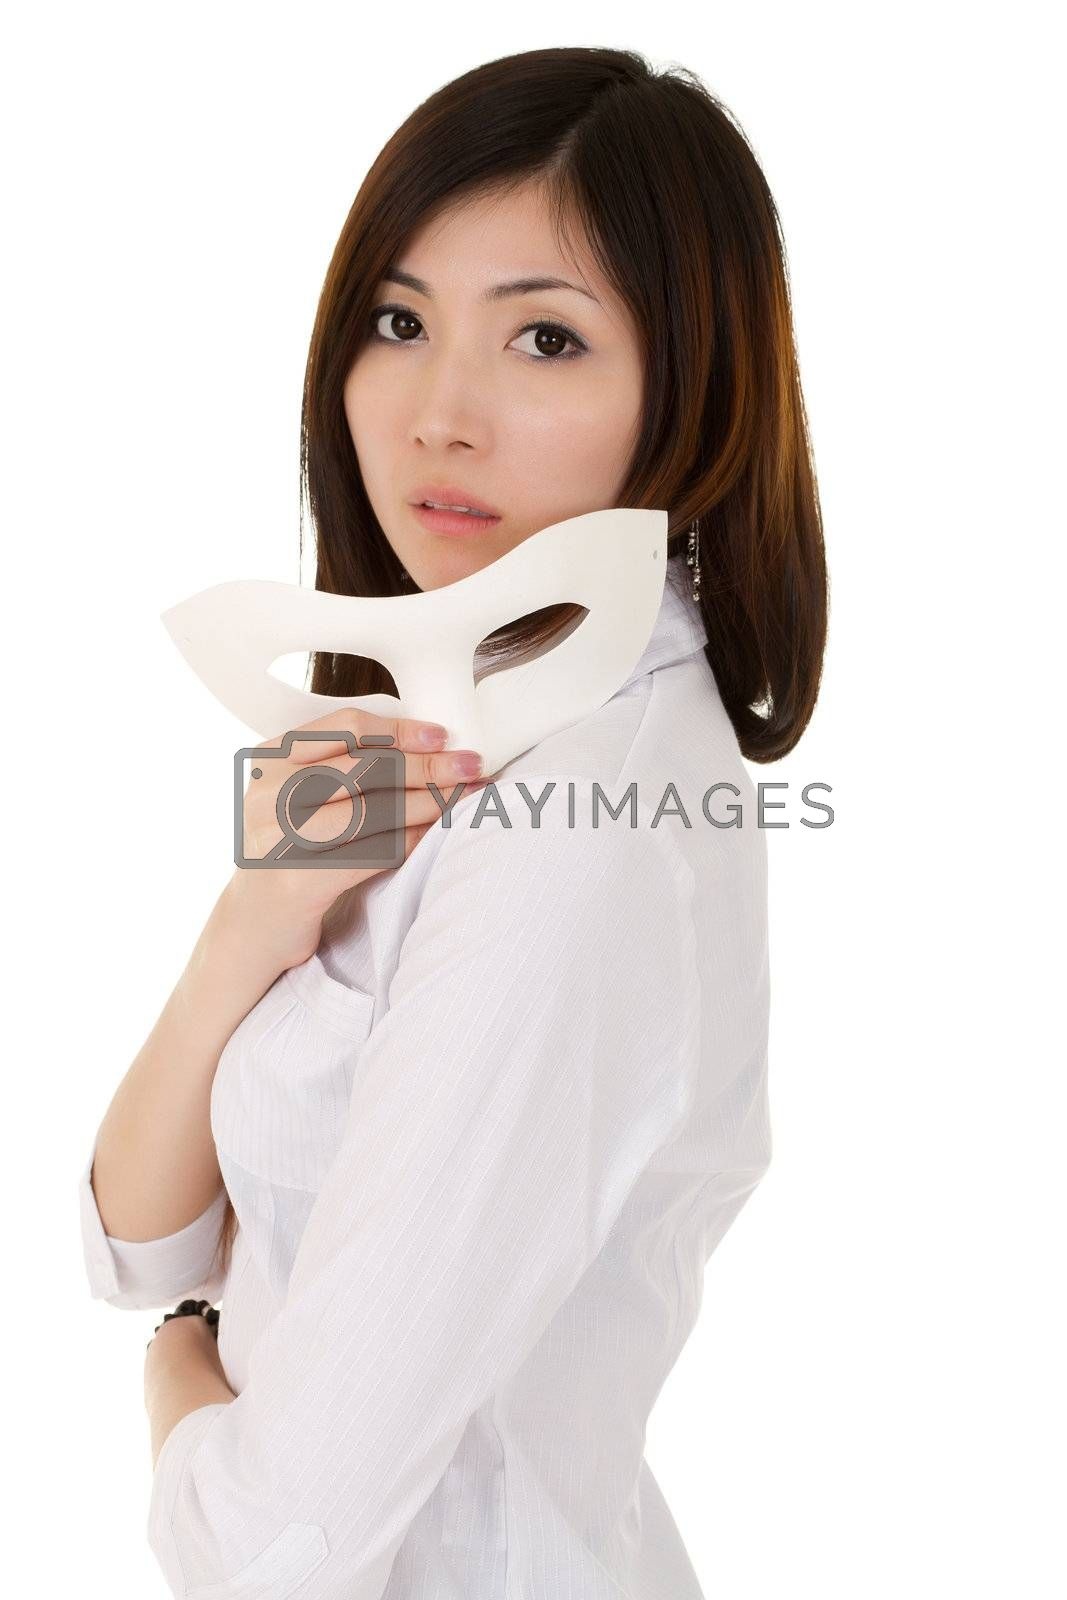 Royalty free image of mysterious business woman by elwynn